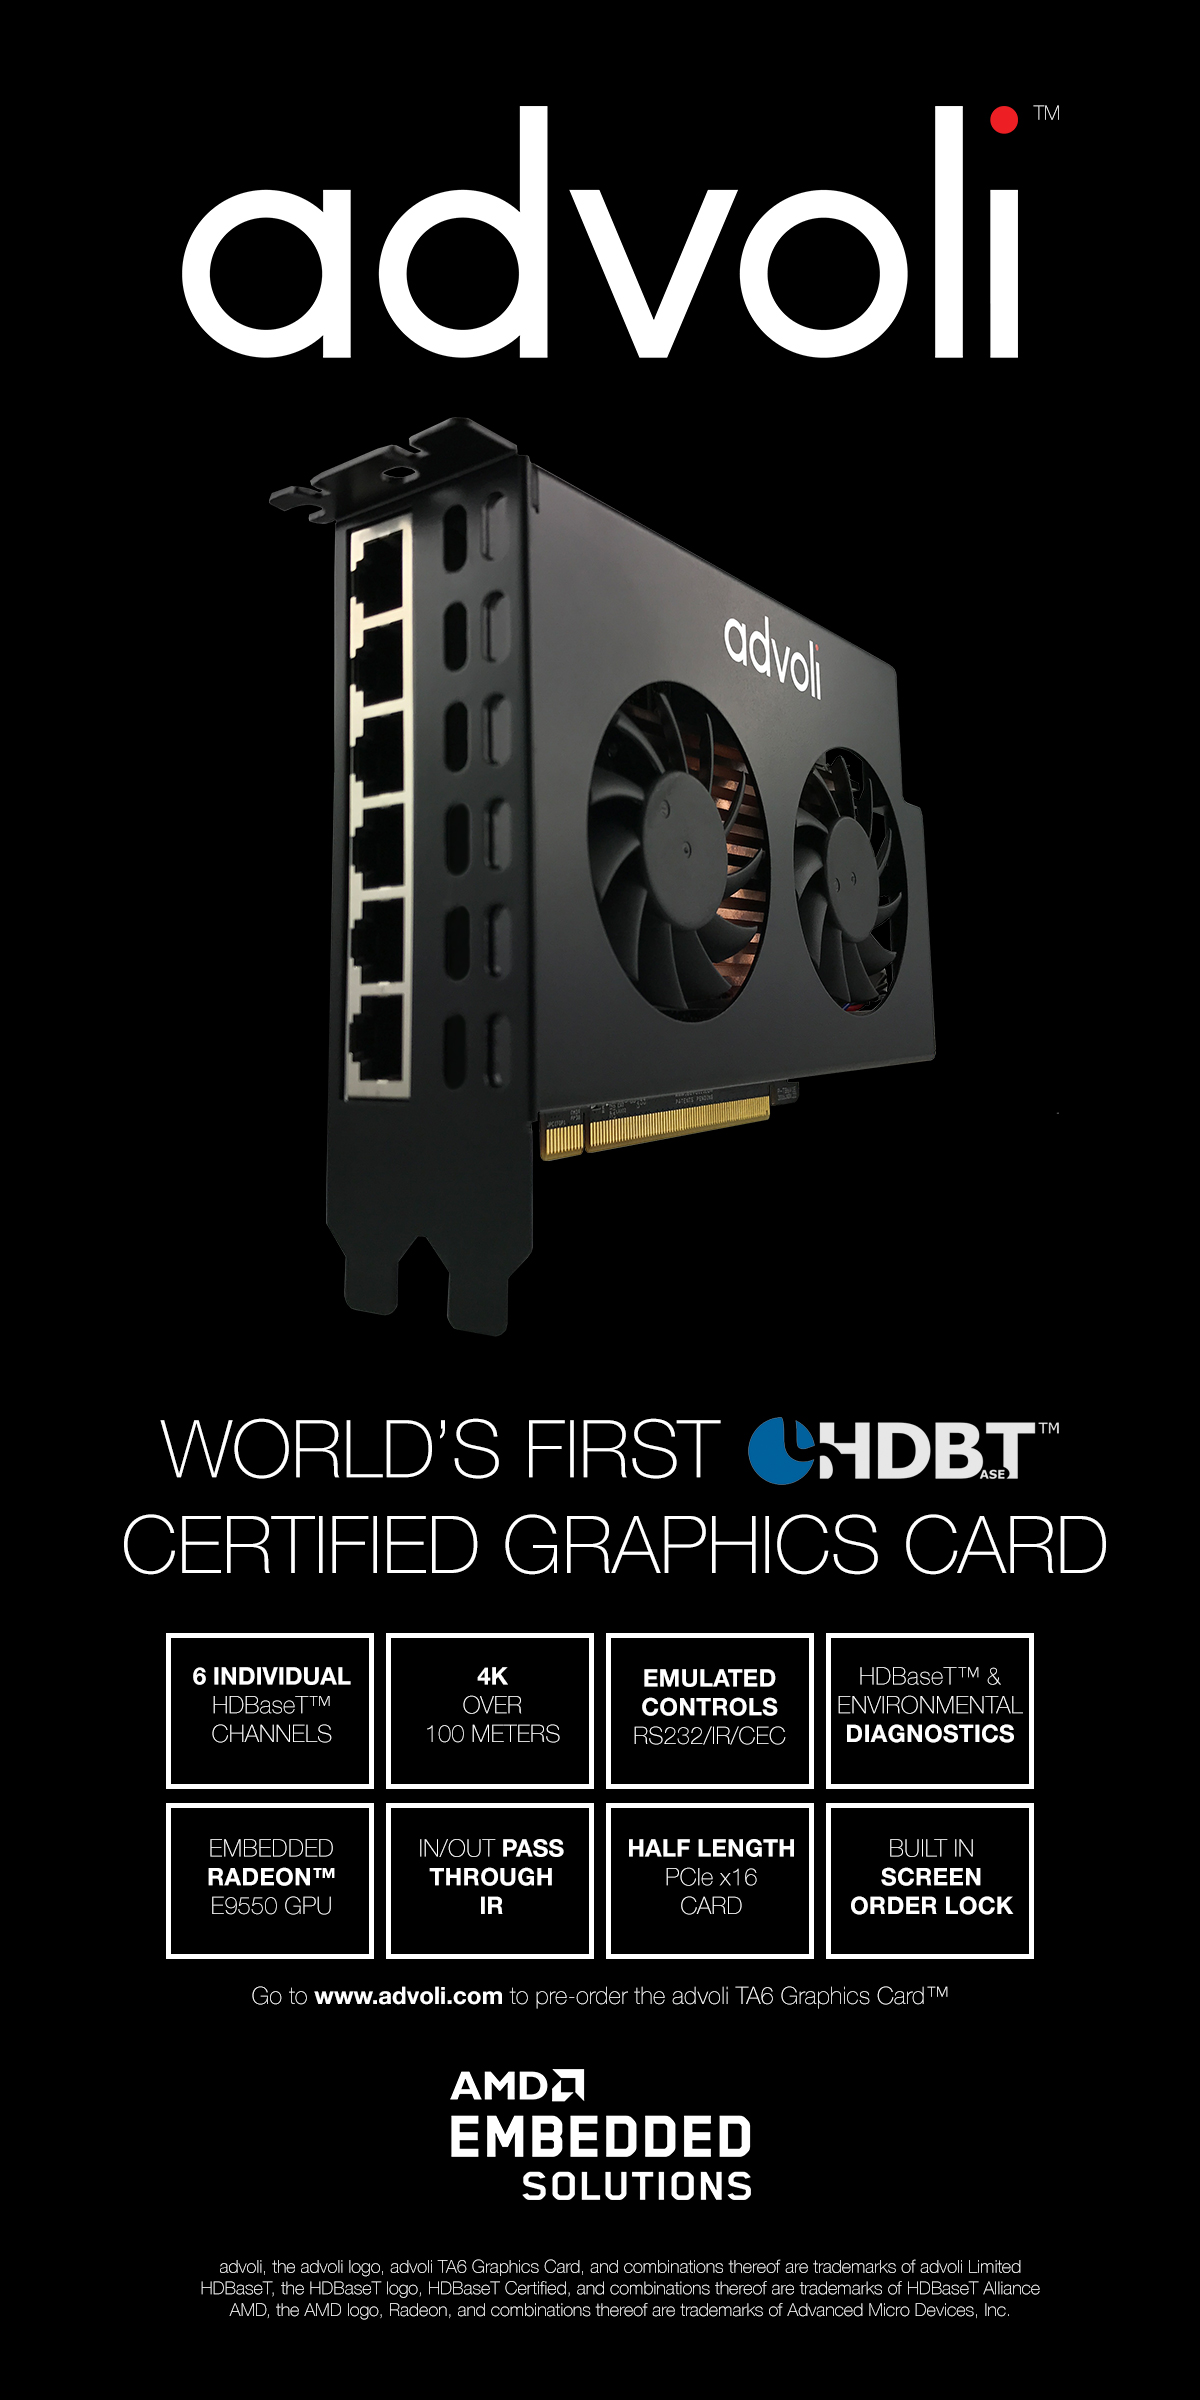 advoli TA6 World's First HDBaseT Certified Graphics Card